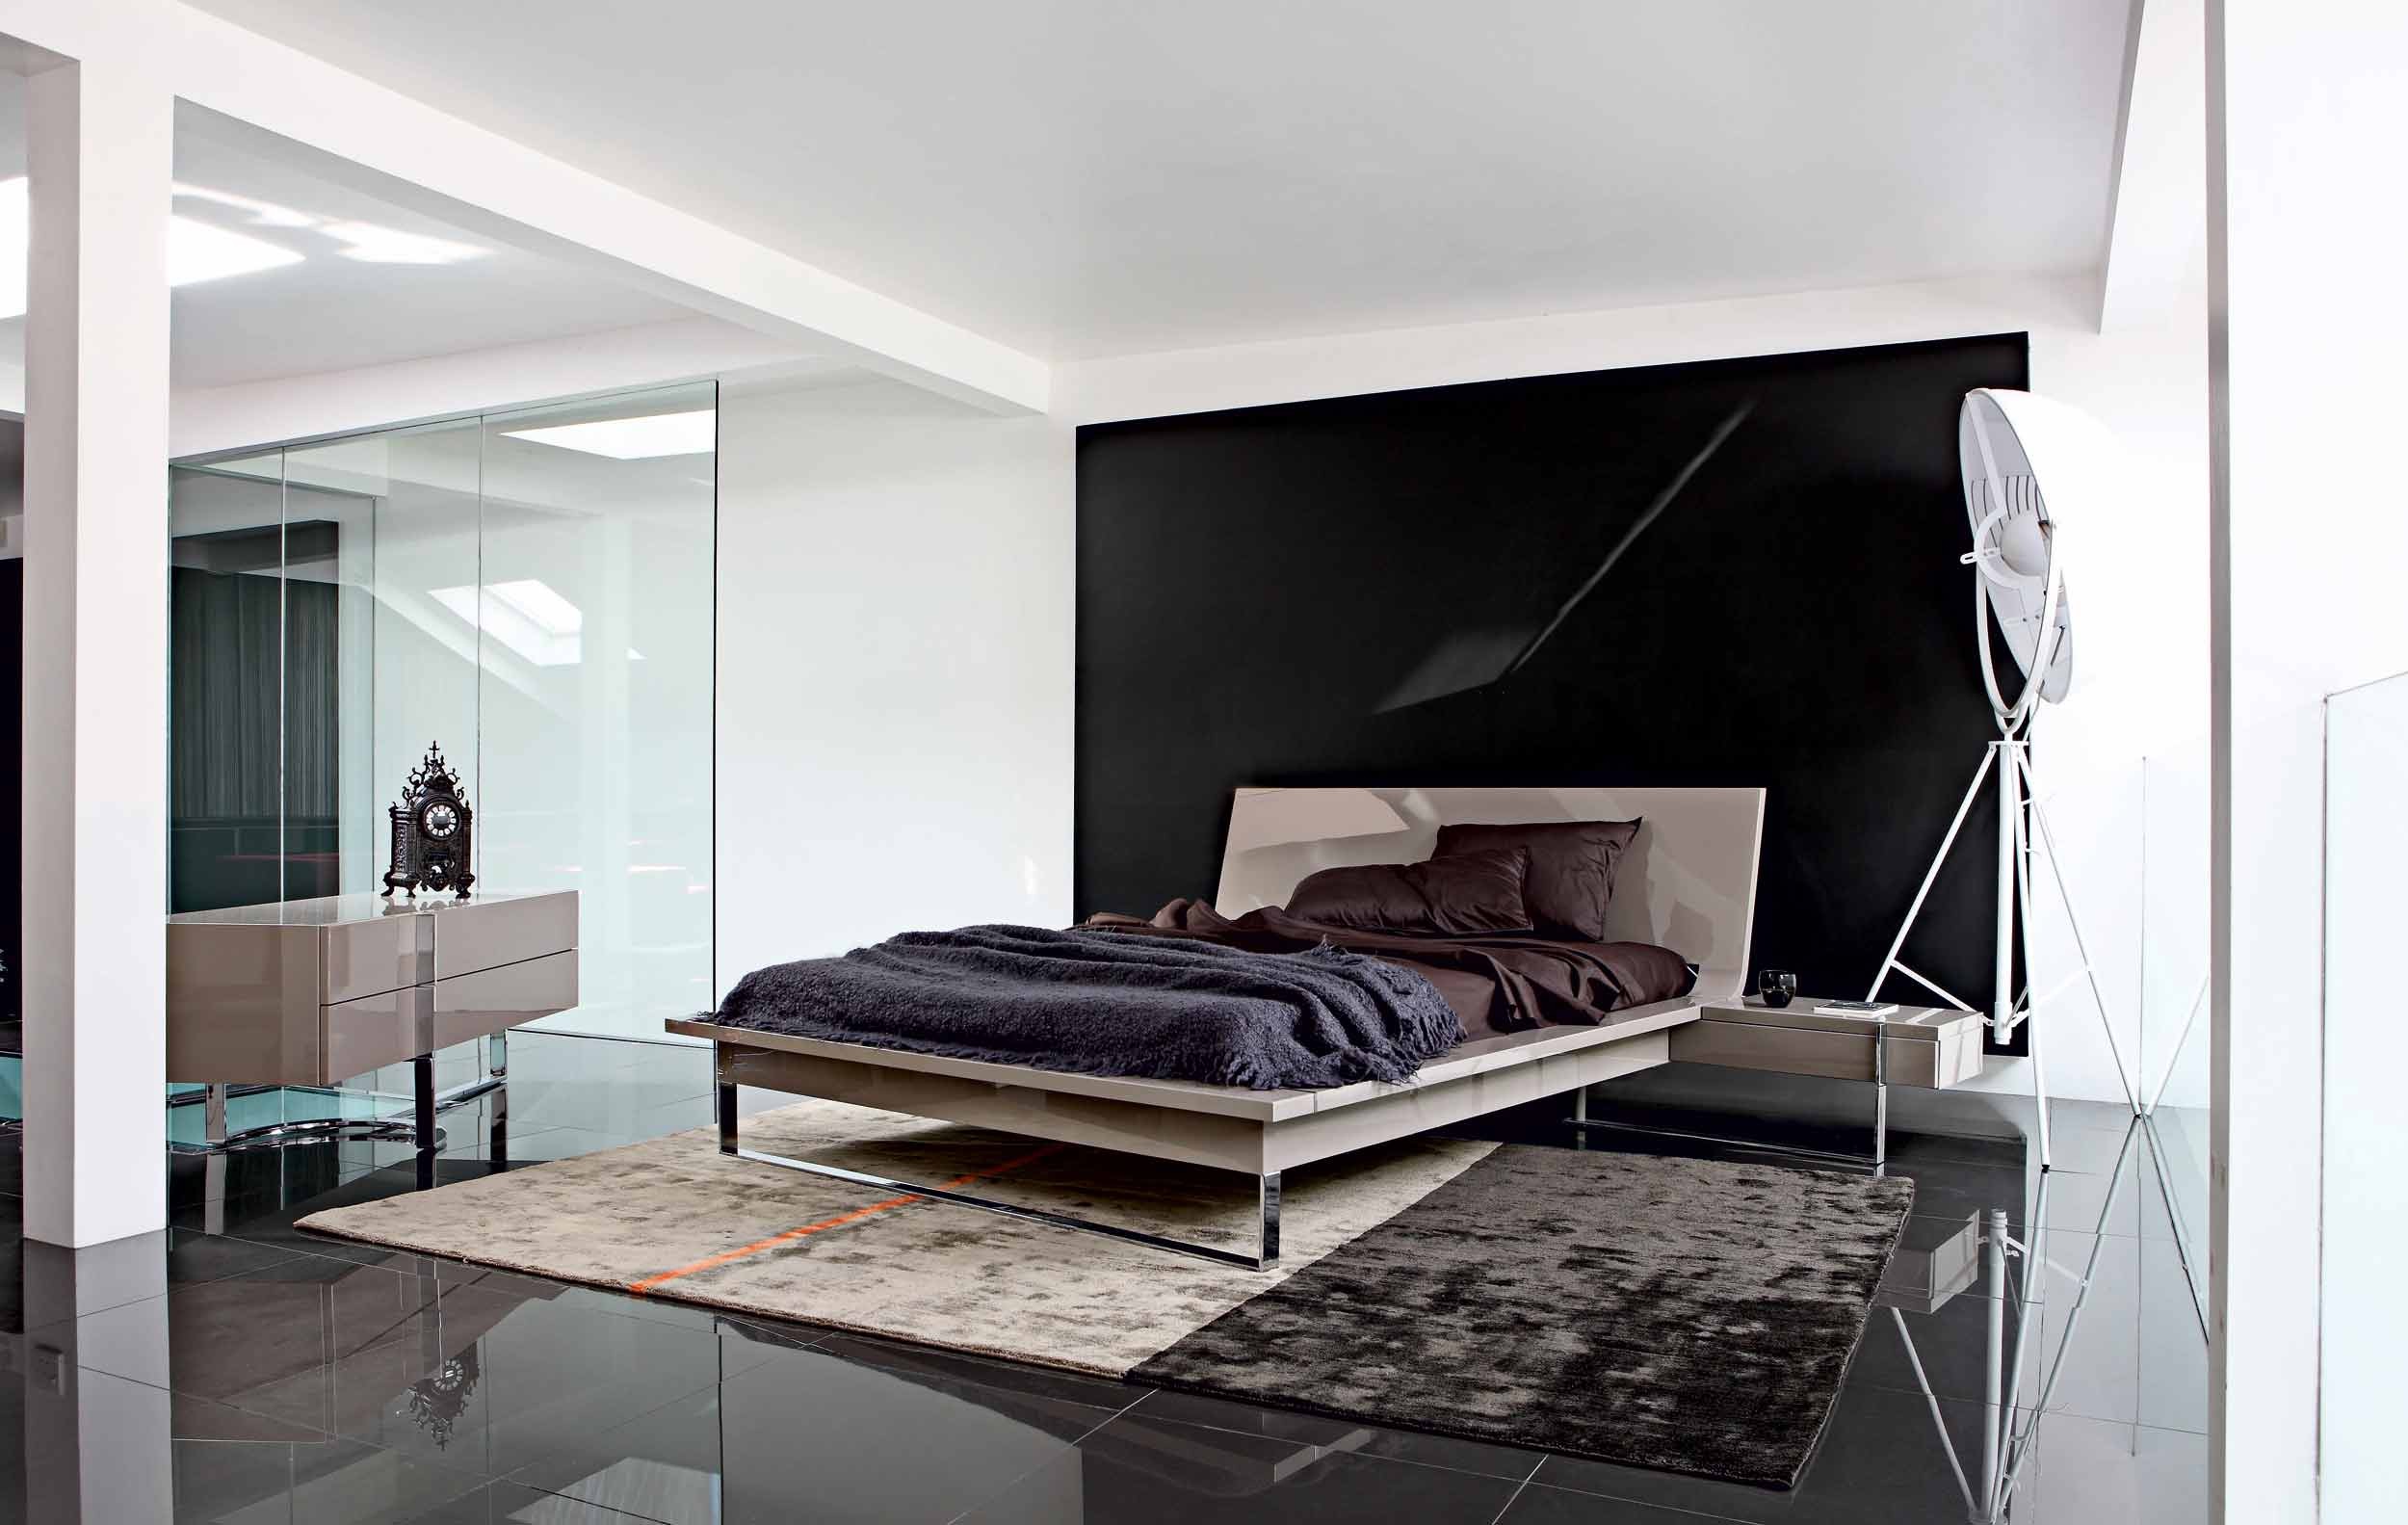 Bedrooms from roche bobois for Minimalist bedding design